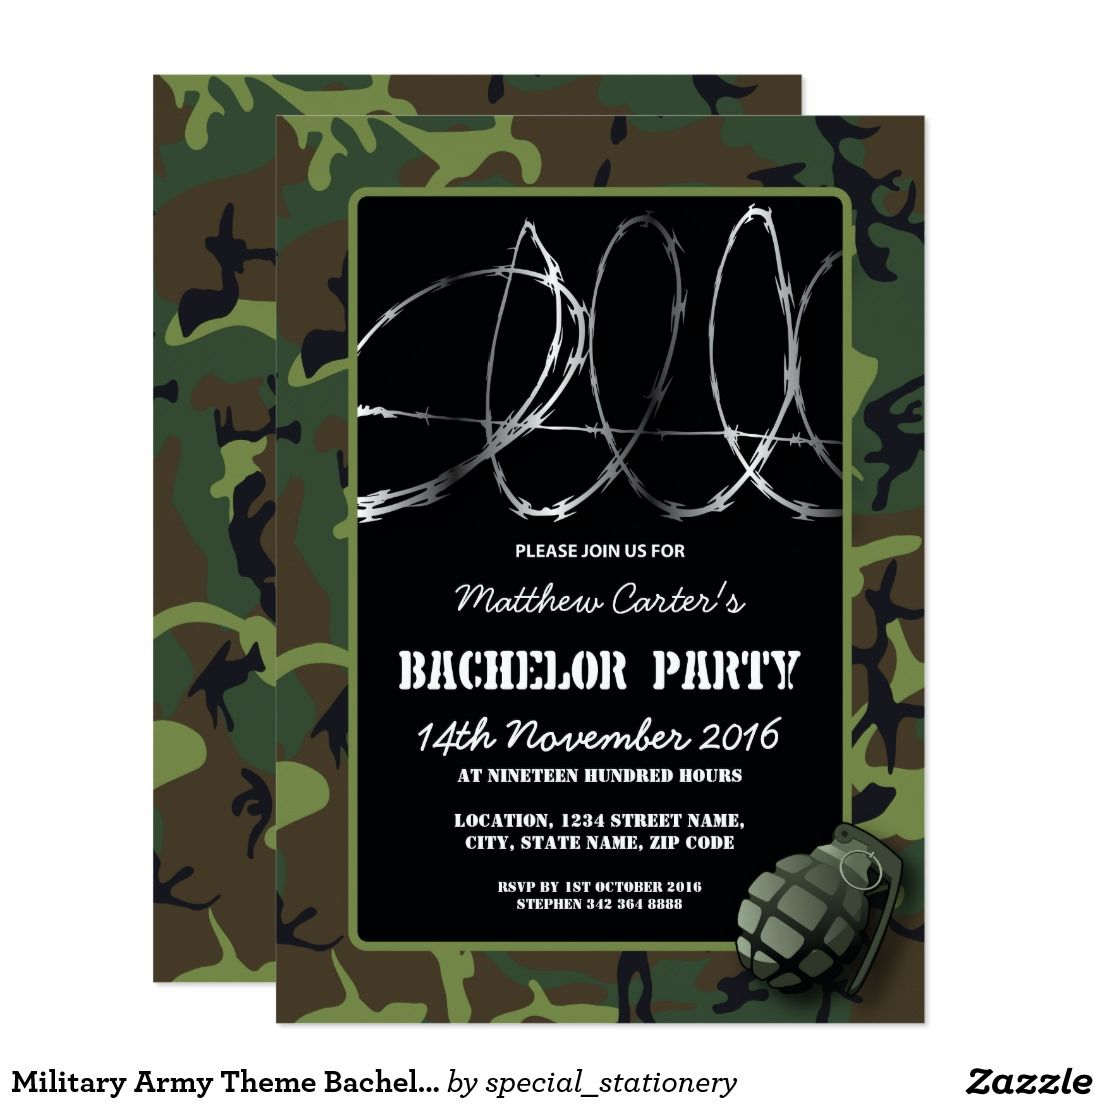 Military Army Theme Bachelor Party Invitation | Bachelor party ...